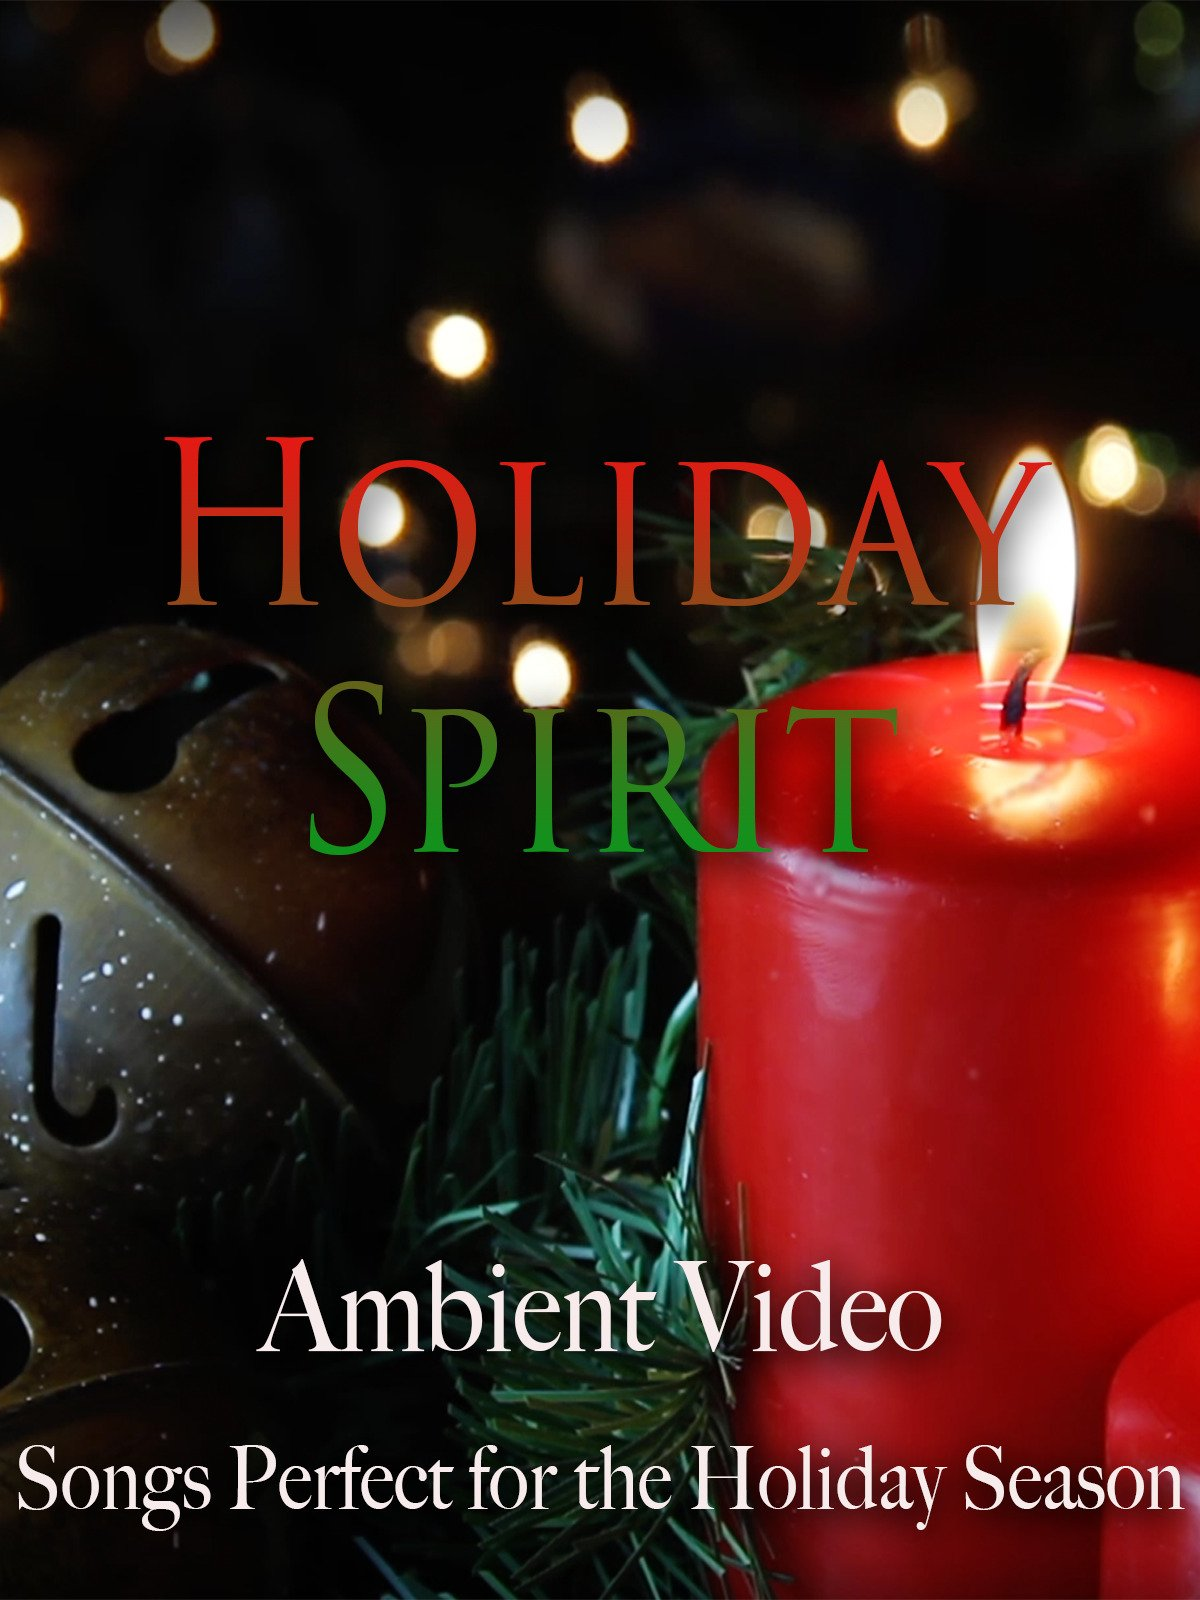 Holiday Spirit Ambient Video Songs Perfect for the Holiday Season